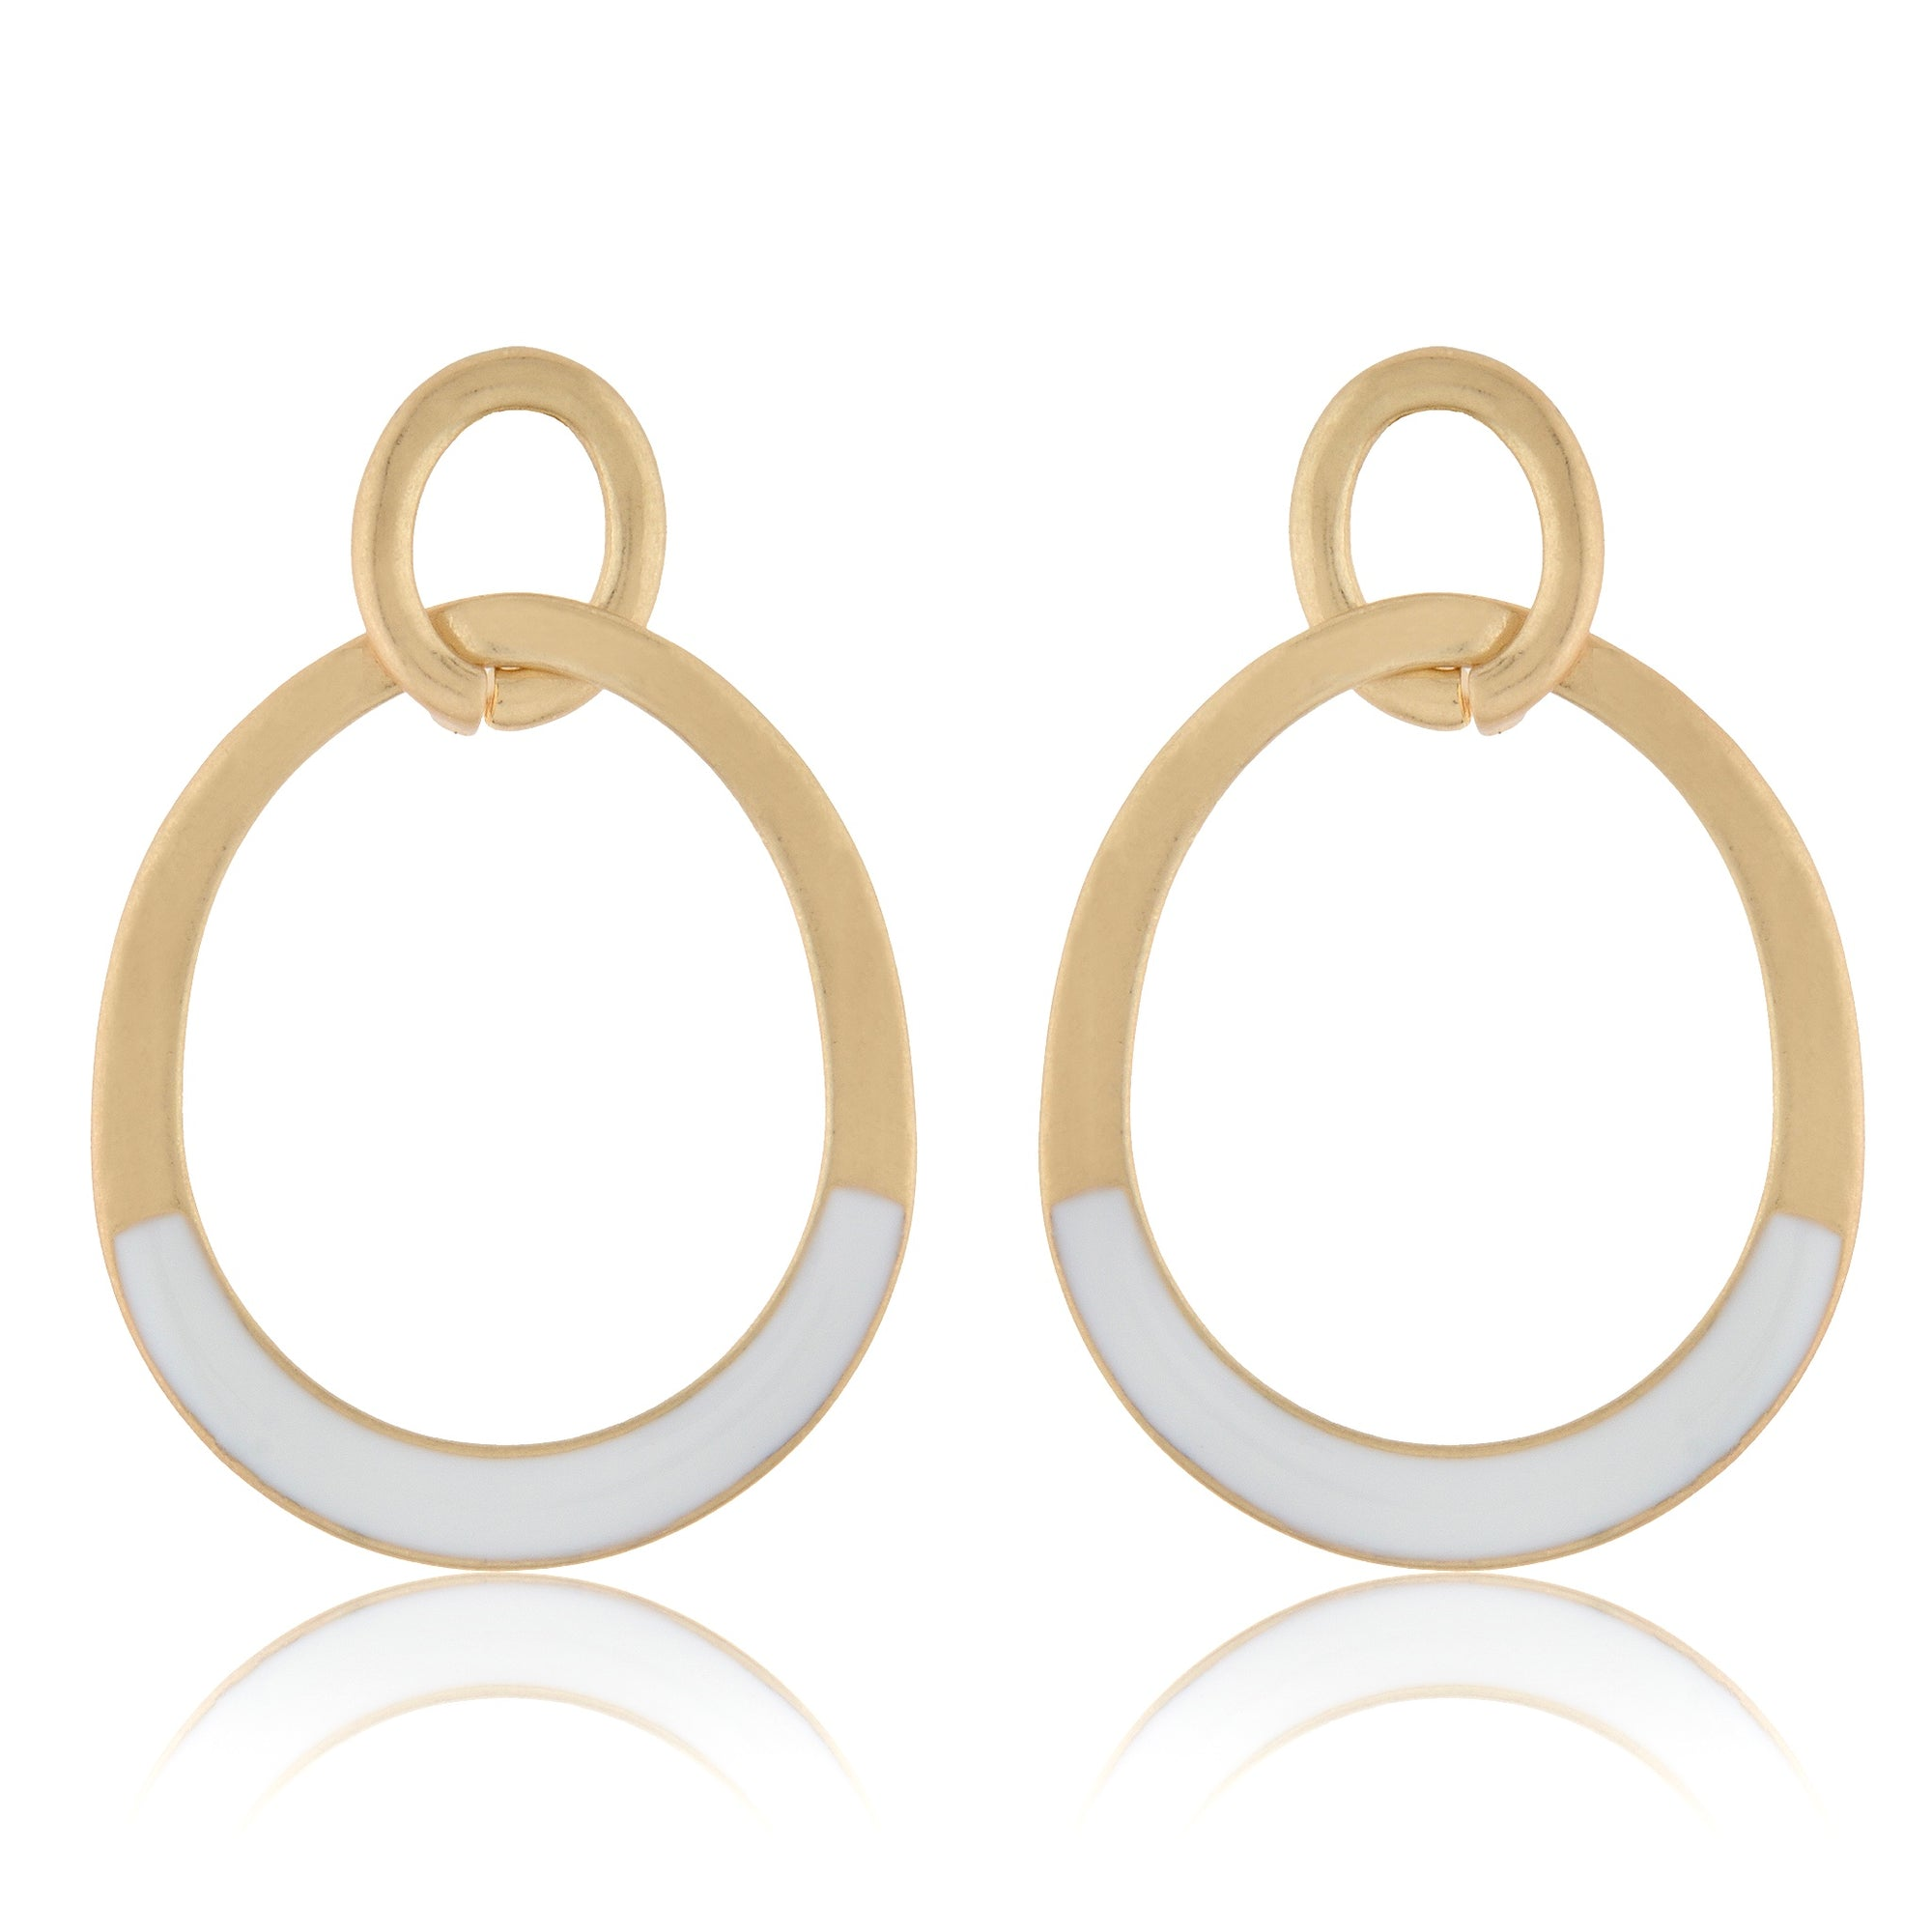 Pale Gold & White 2 Loop Oval Earrings